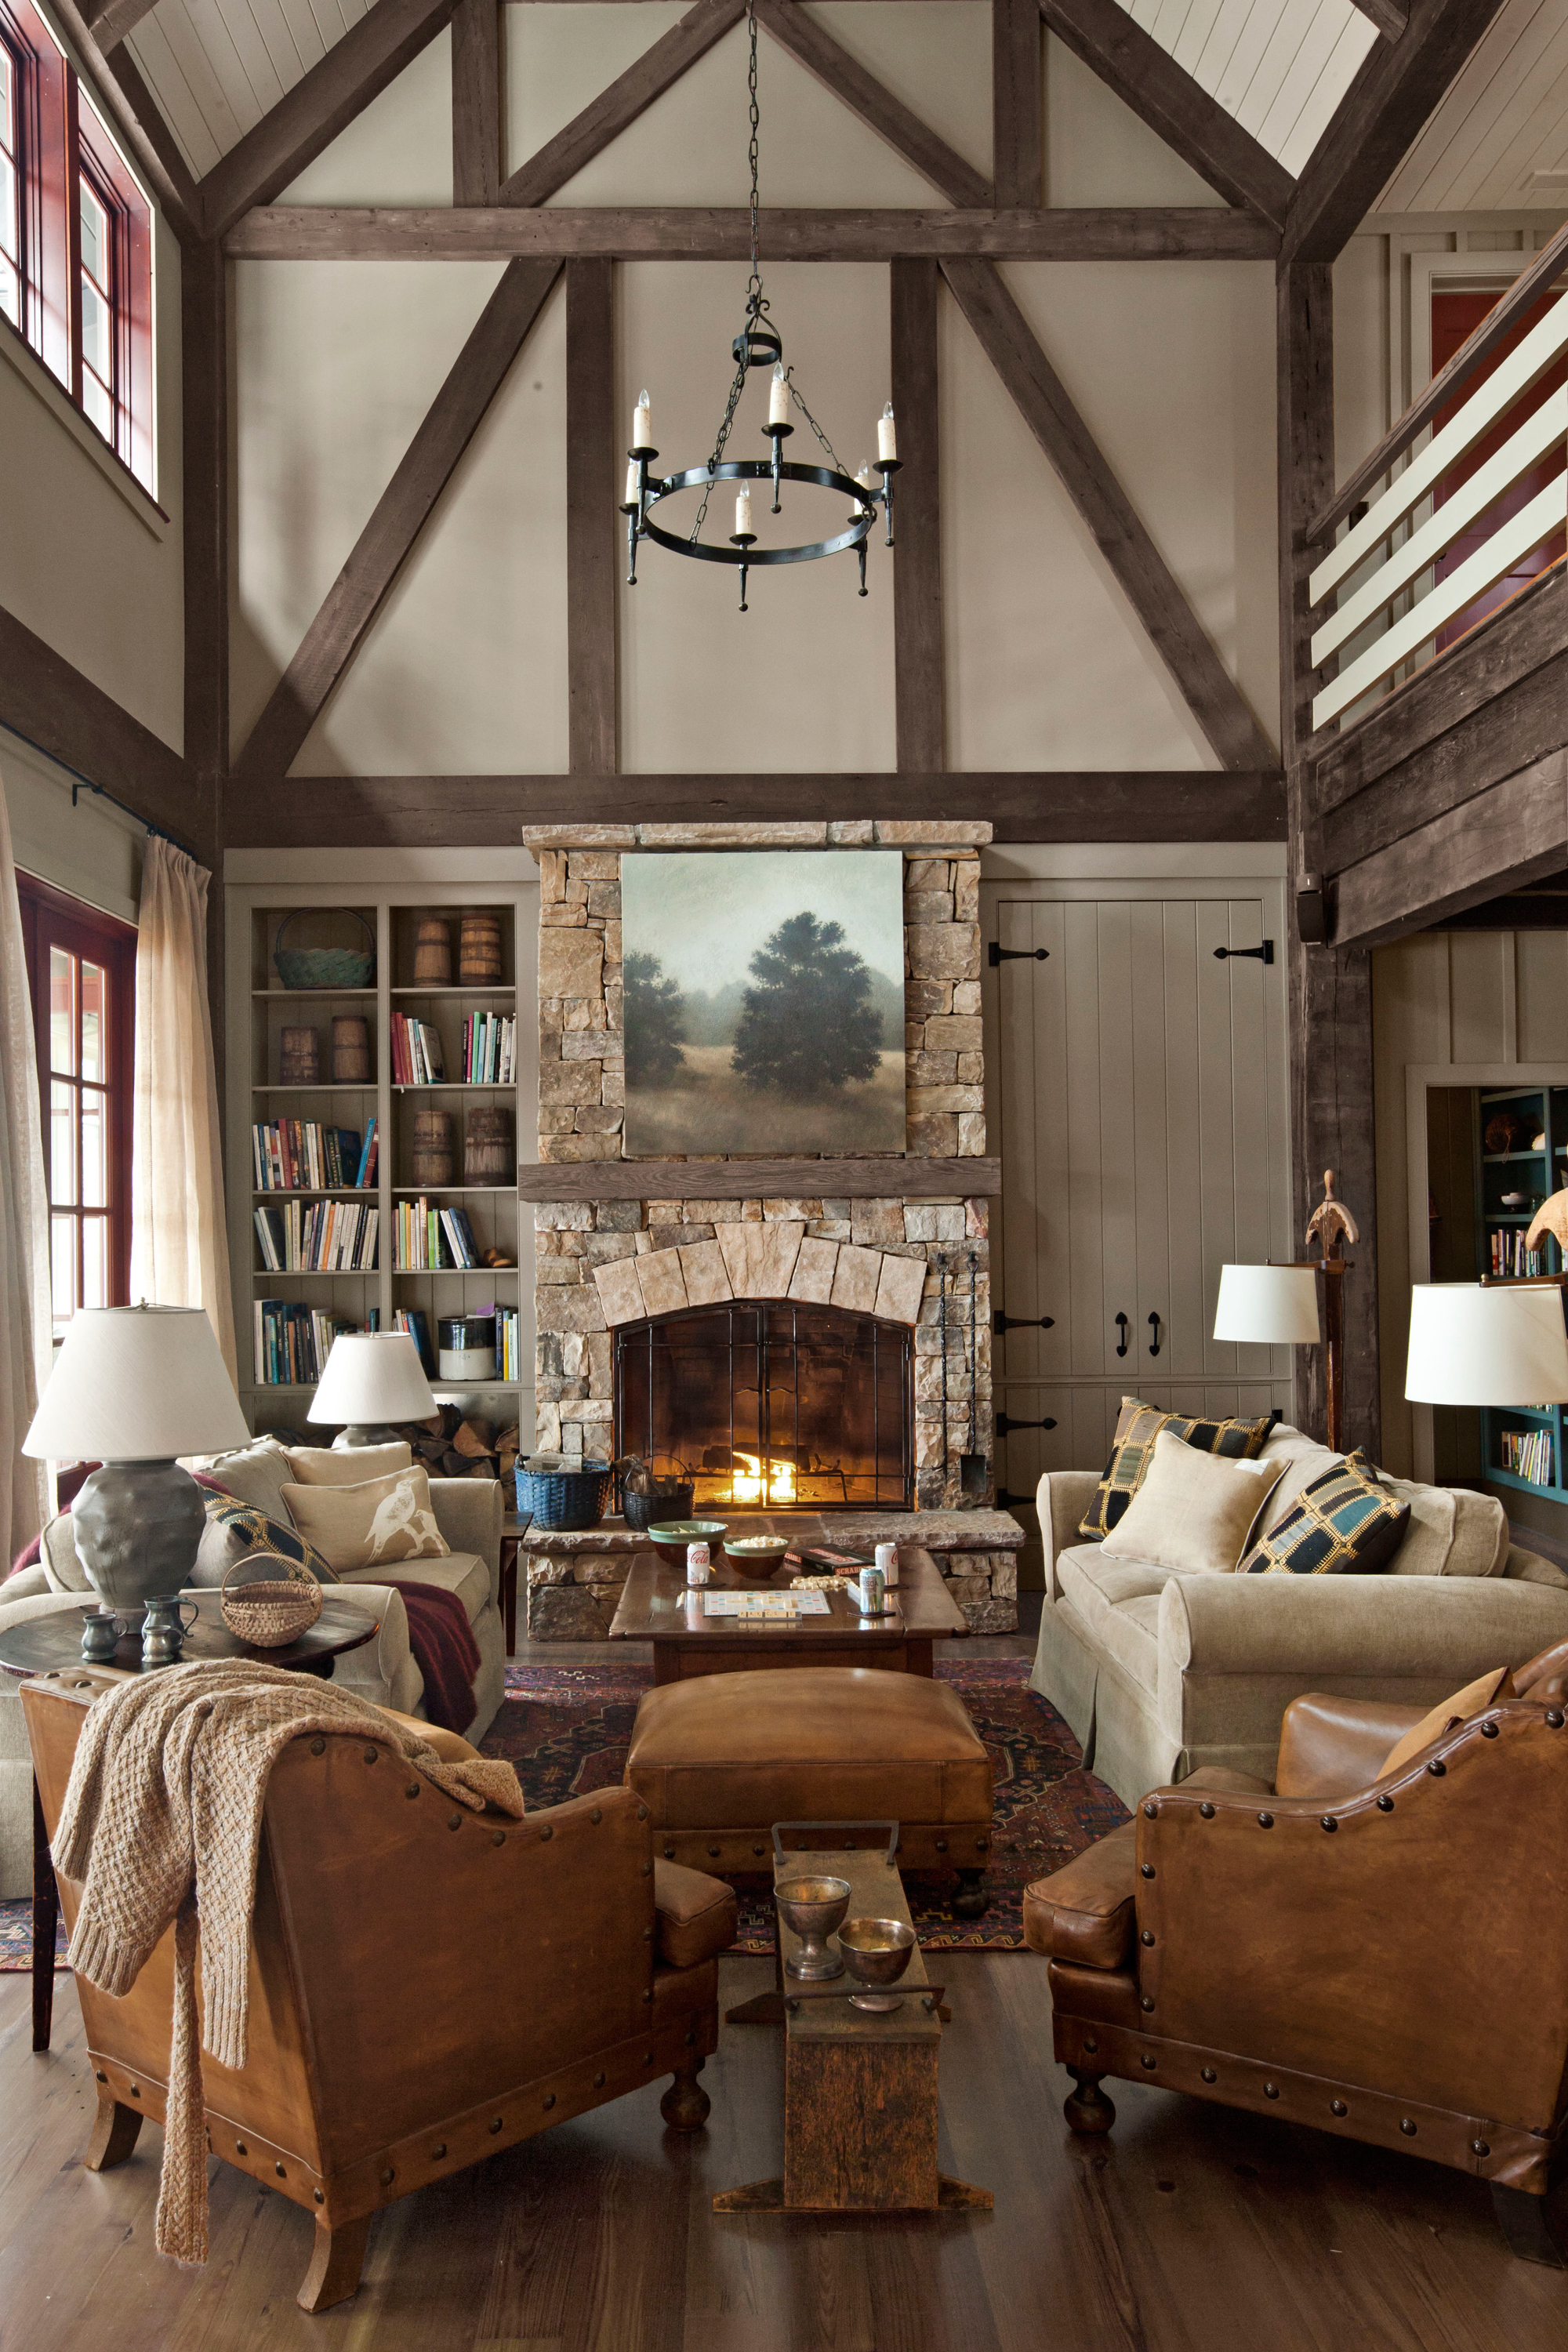 House Decor Ideas For The Living Room Beauteous 40 Cozy Living Room Decorating Ideas  Centerfieldbar Inspiration Design